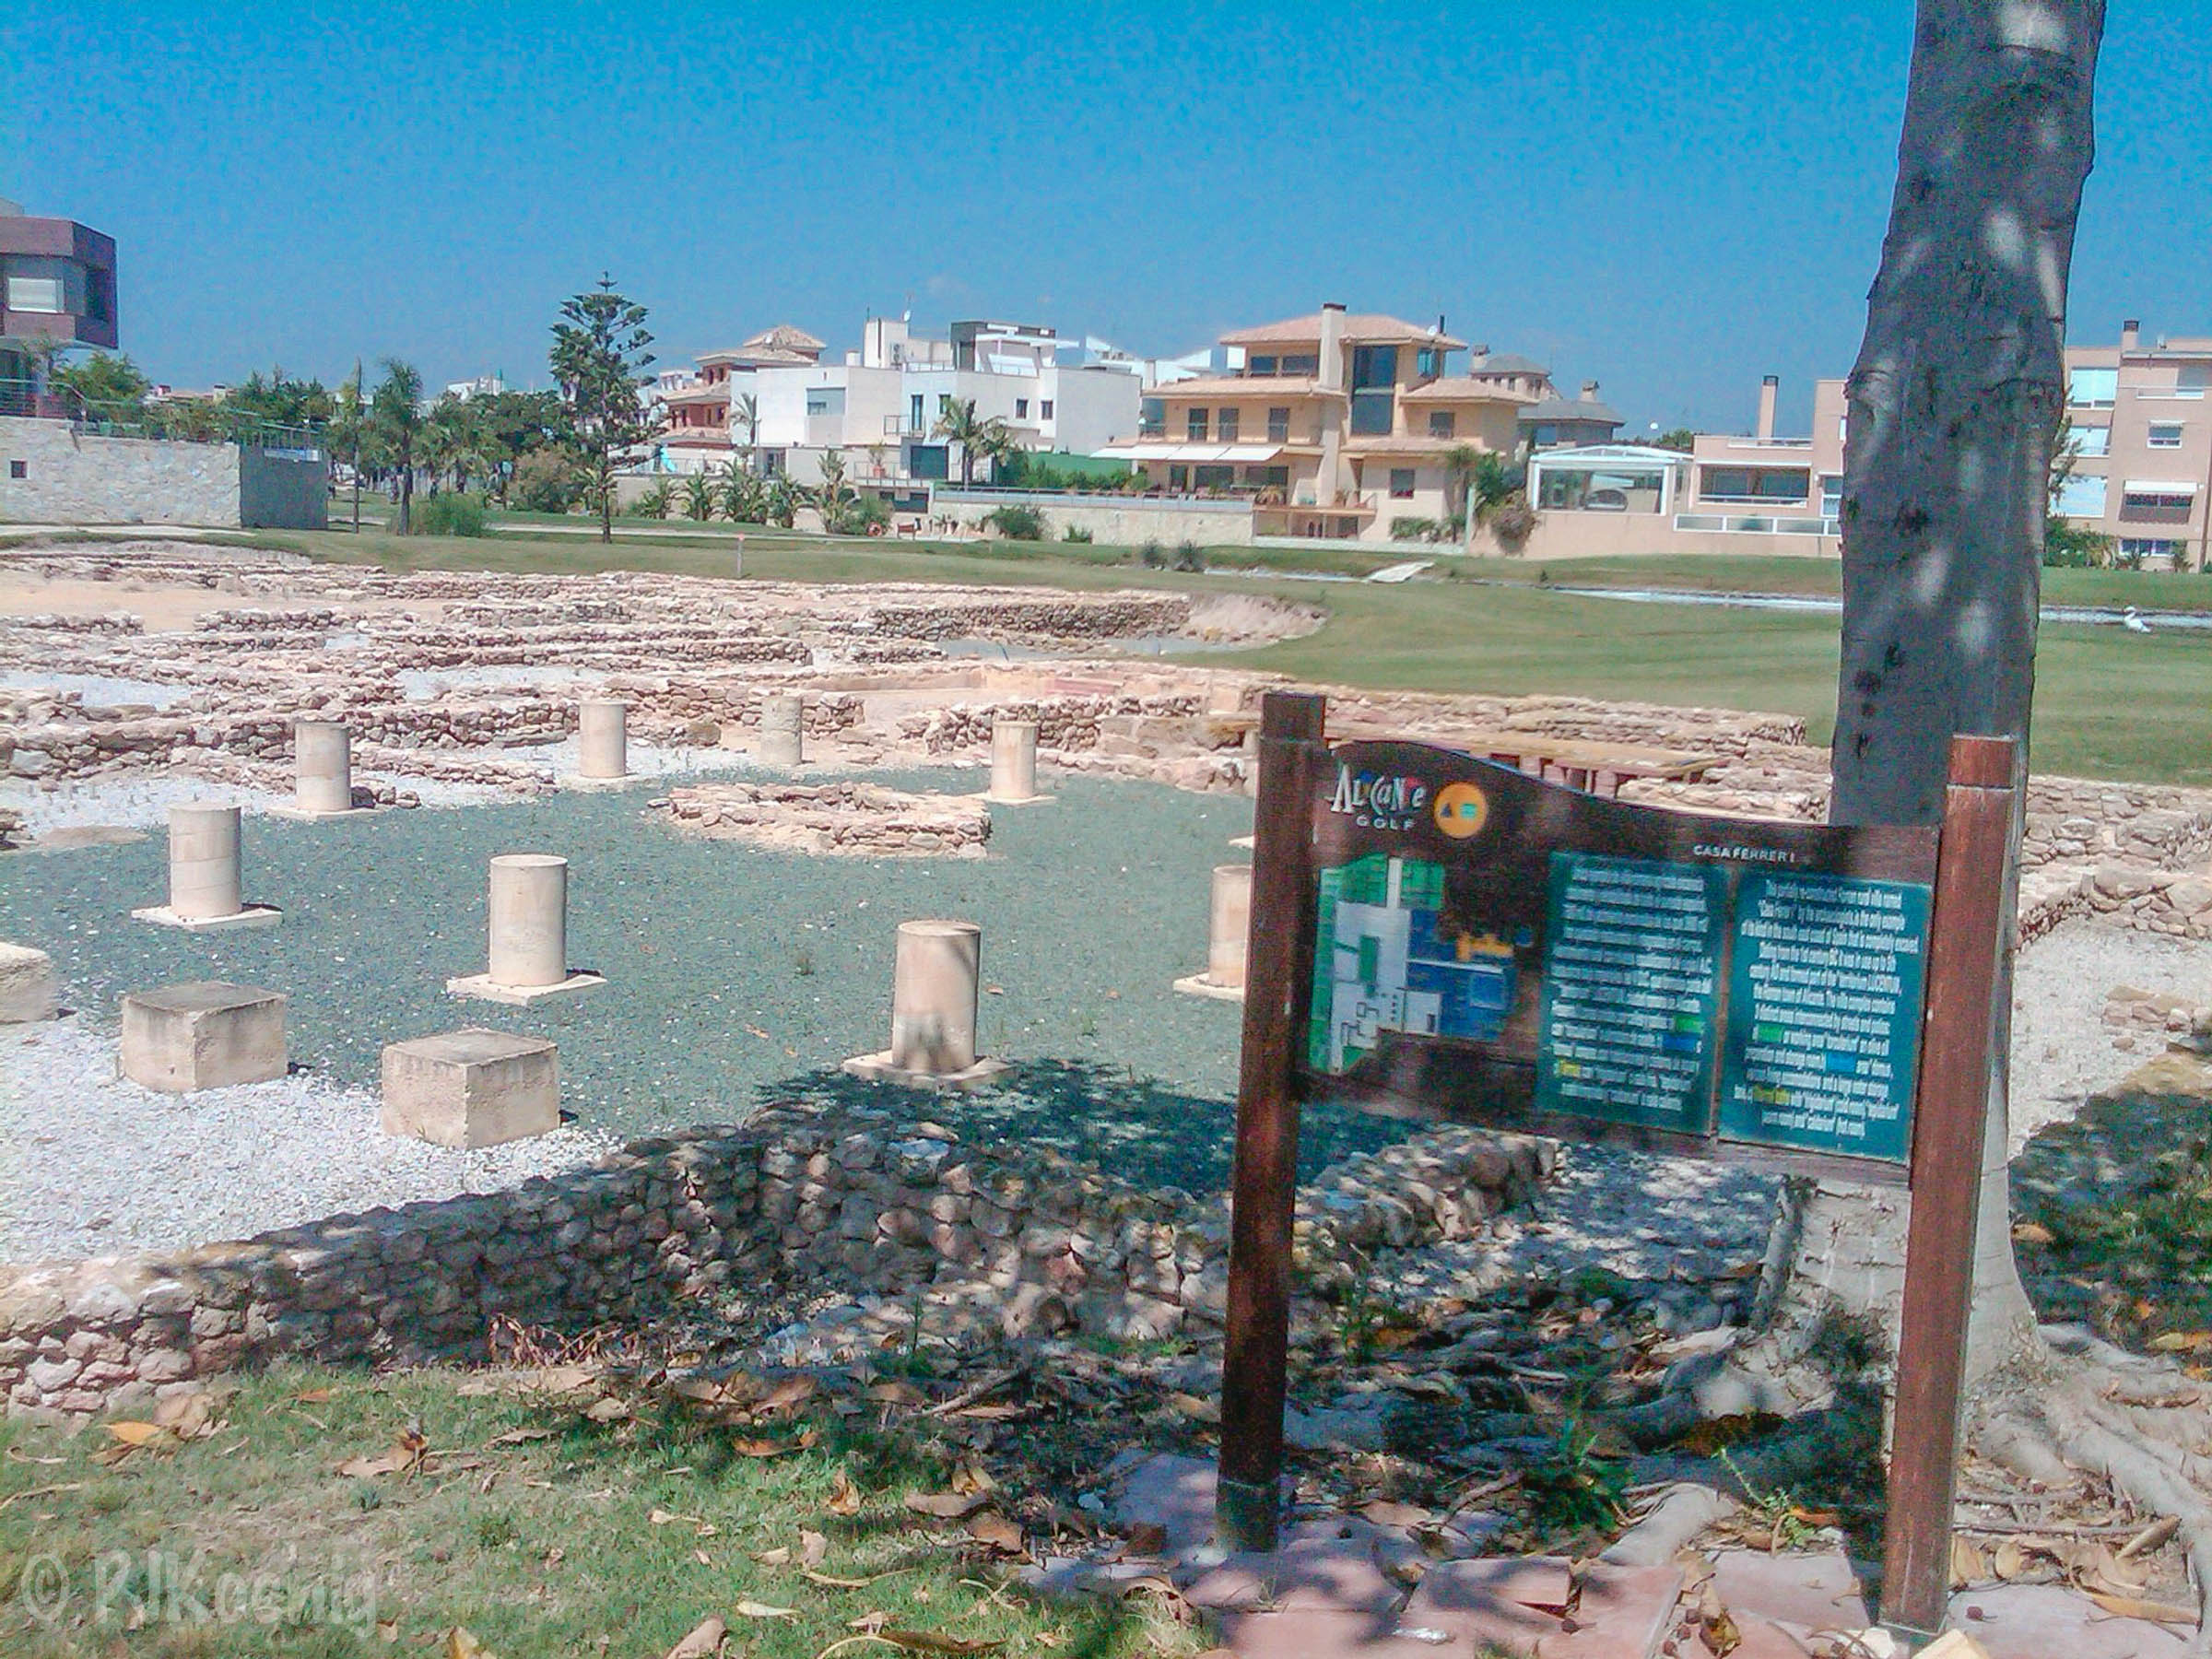 The ruins of a Roman villa from the 1st century BC at Alicante Golf